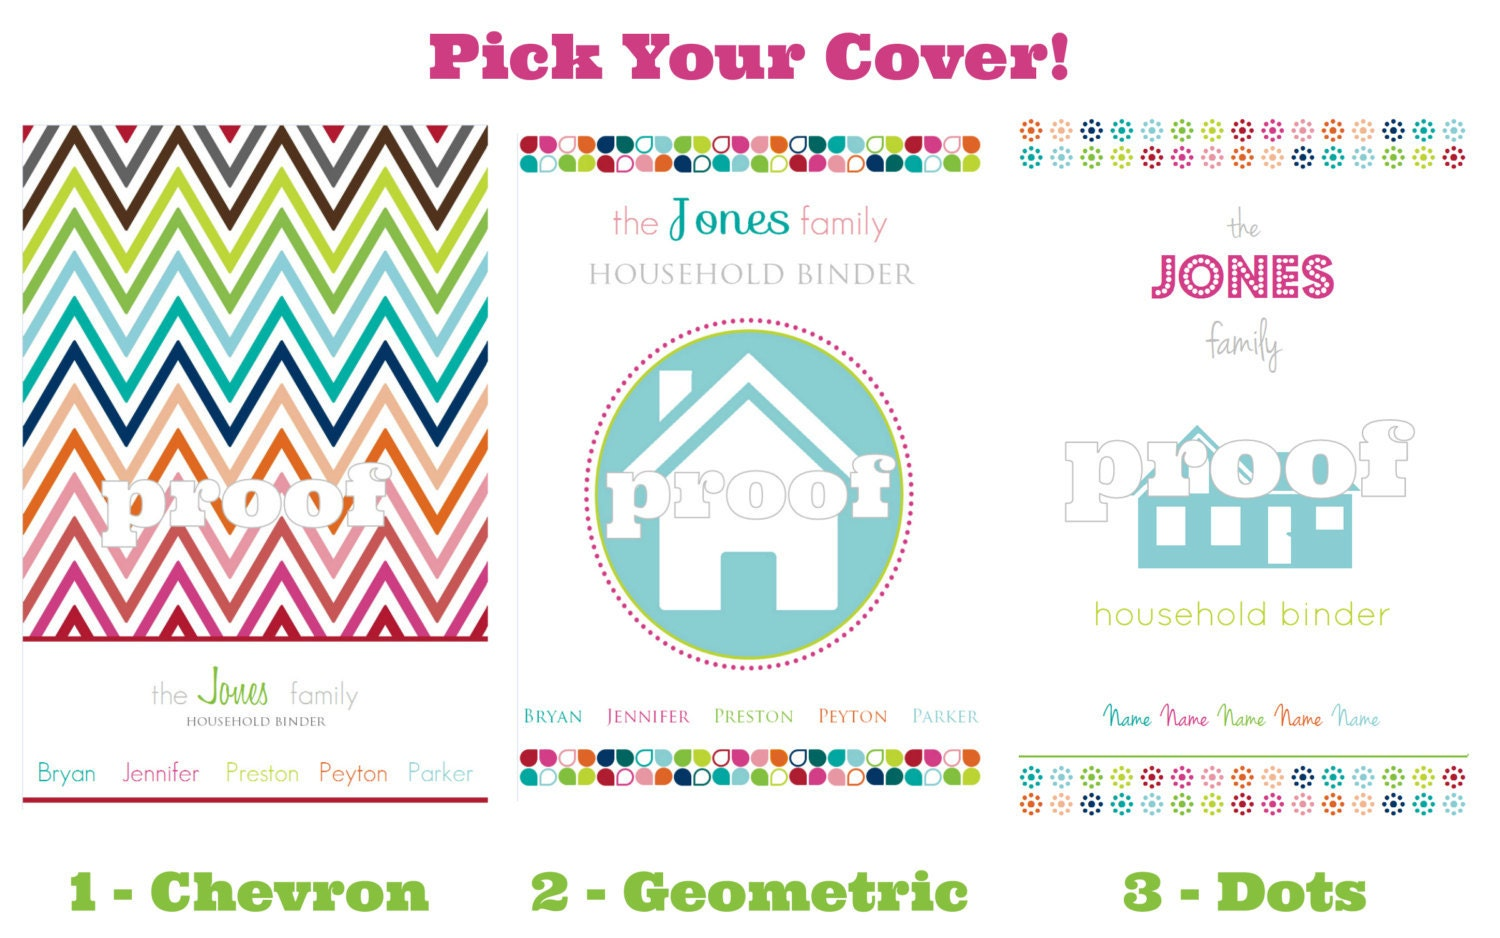 personalized household binder everything printable 128270zoom